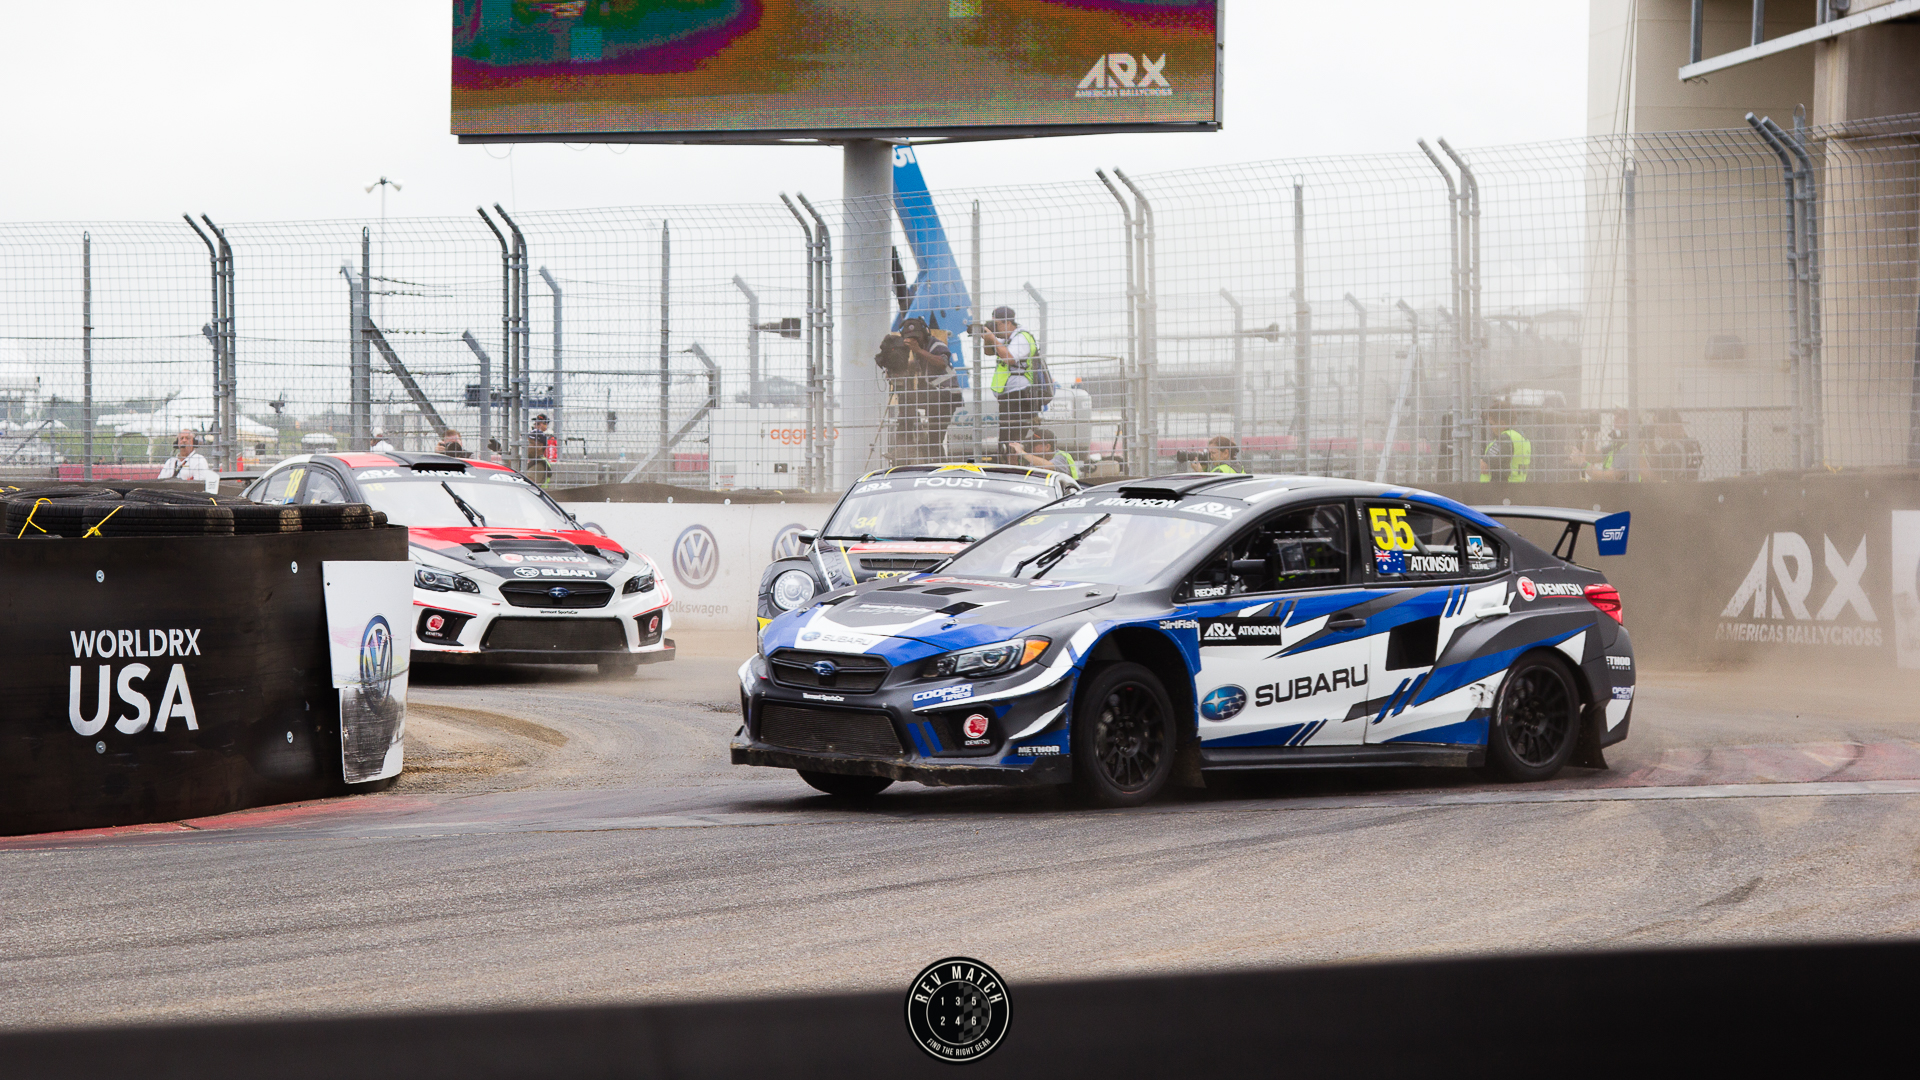 World Rallycross of USA 2018-84.jpg